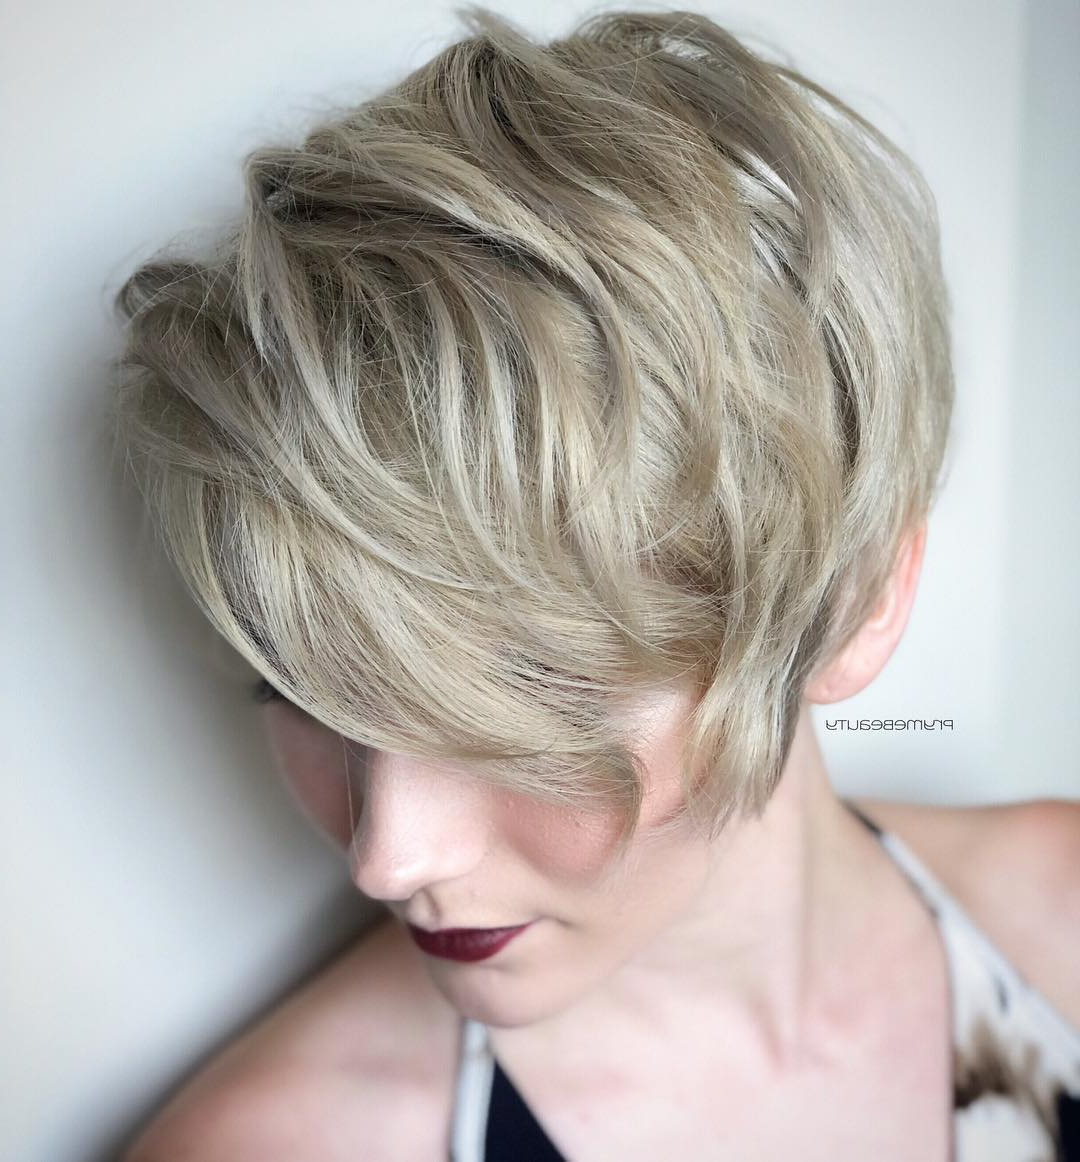 Top 10 Trendy, Low Maintenance Short Layered Hairstyles For 2018  2019 With Easy Maintenance Short Haircuts (View 25 of 25)